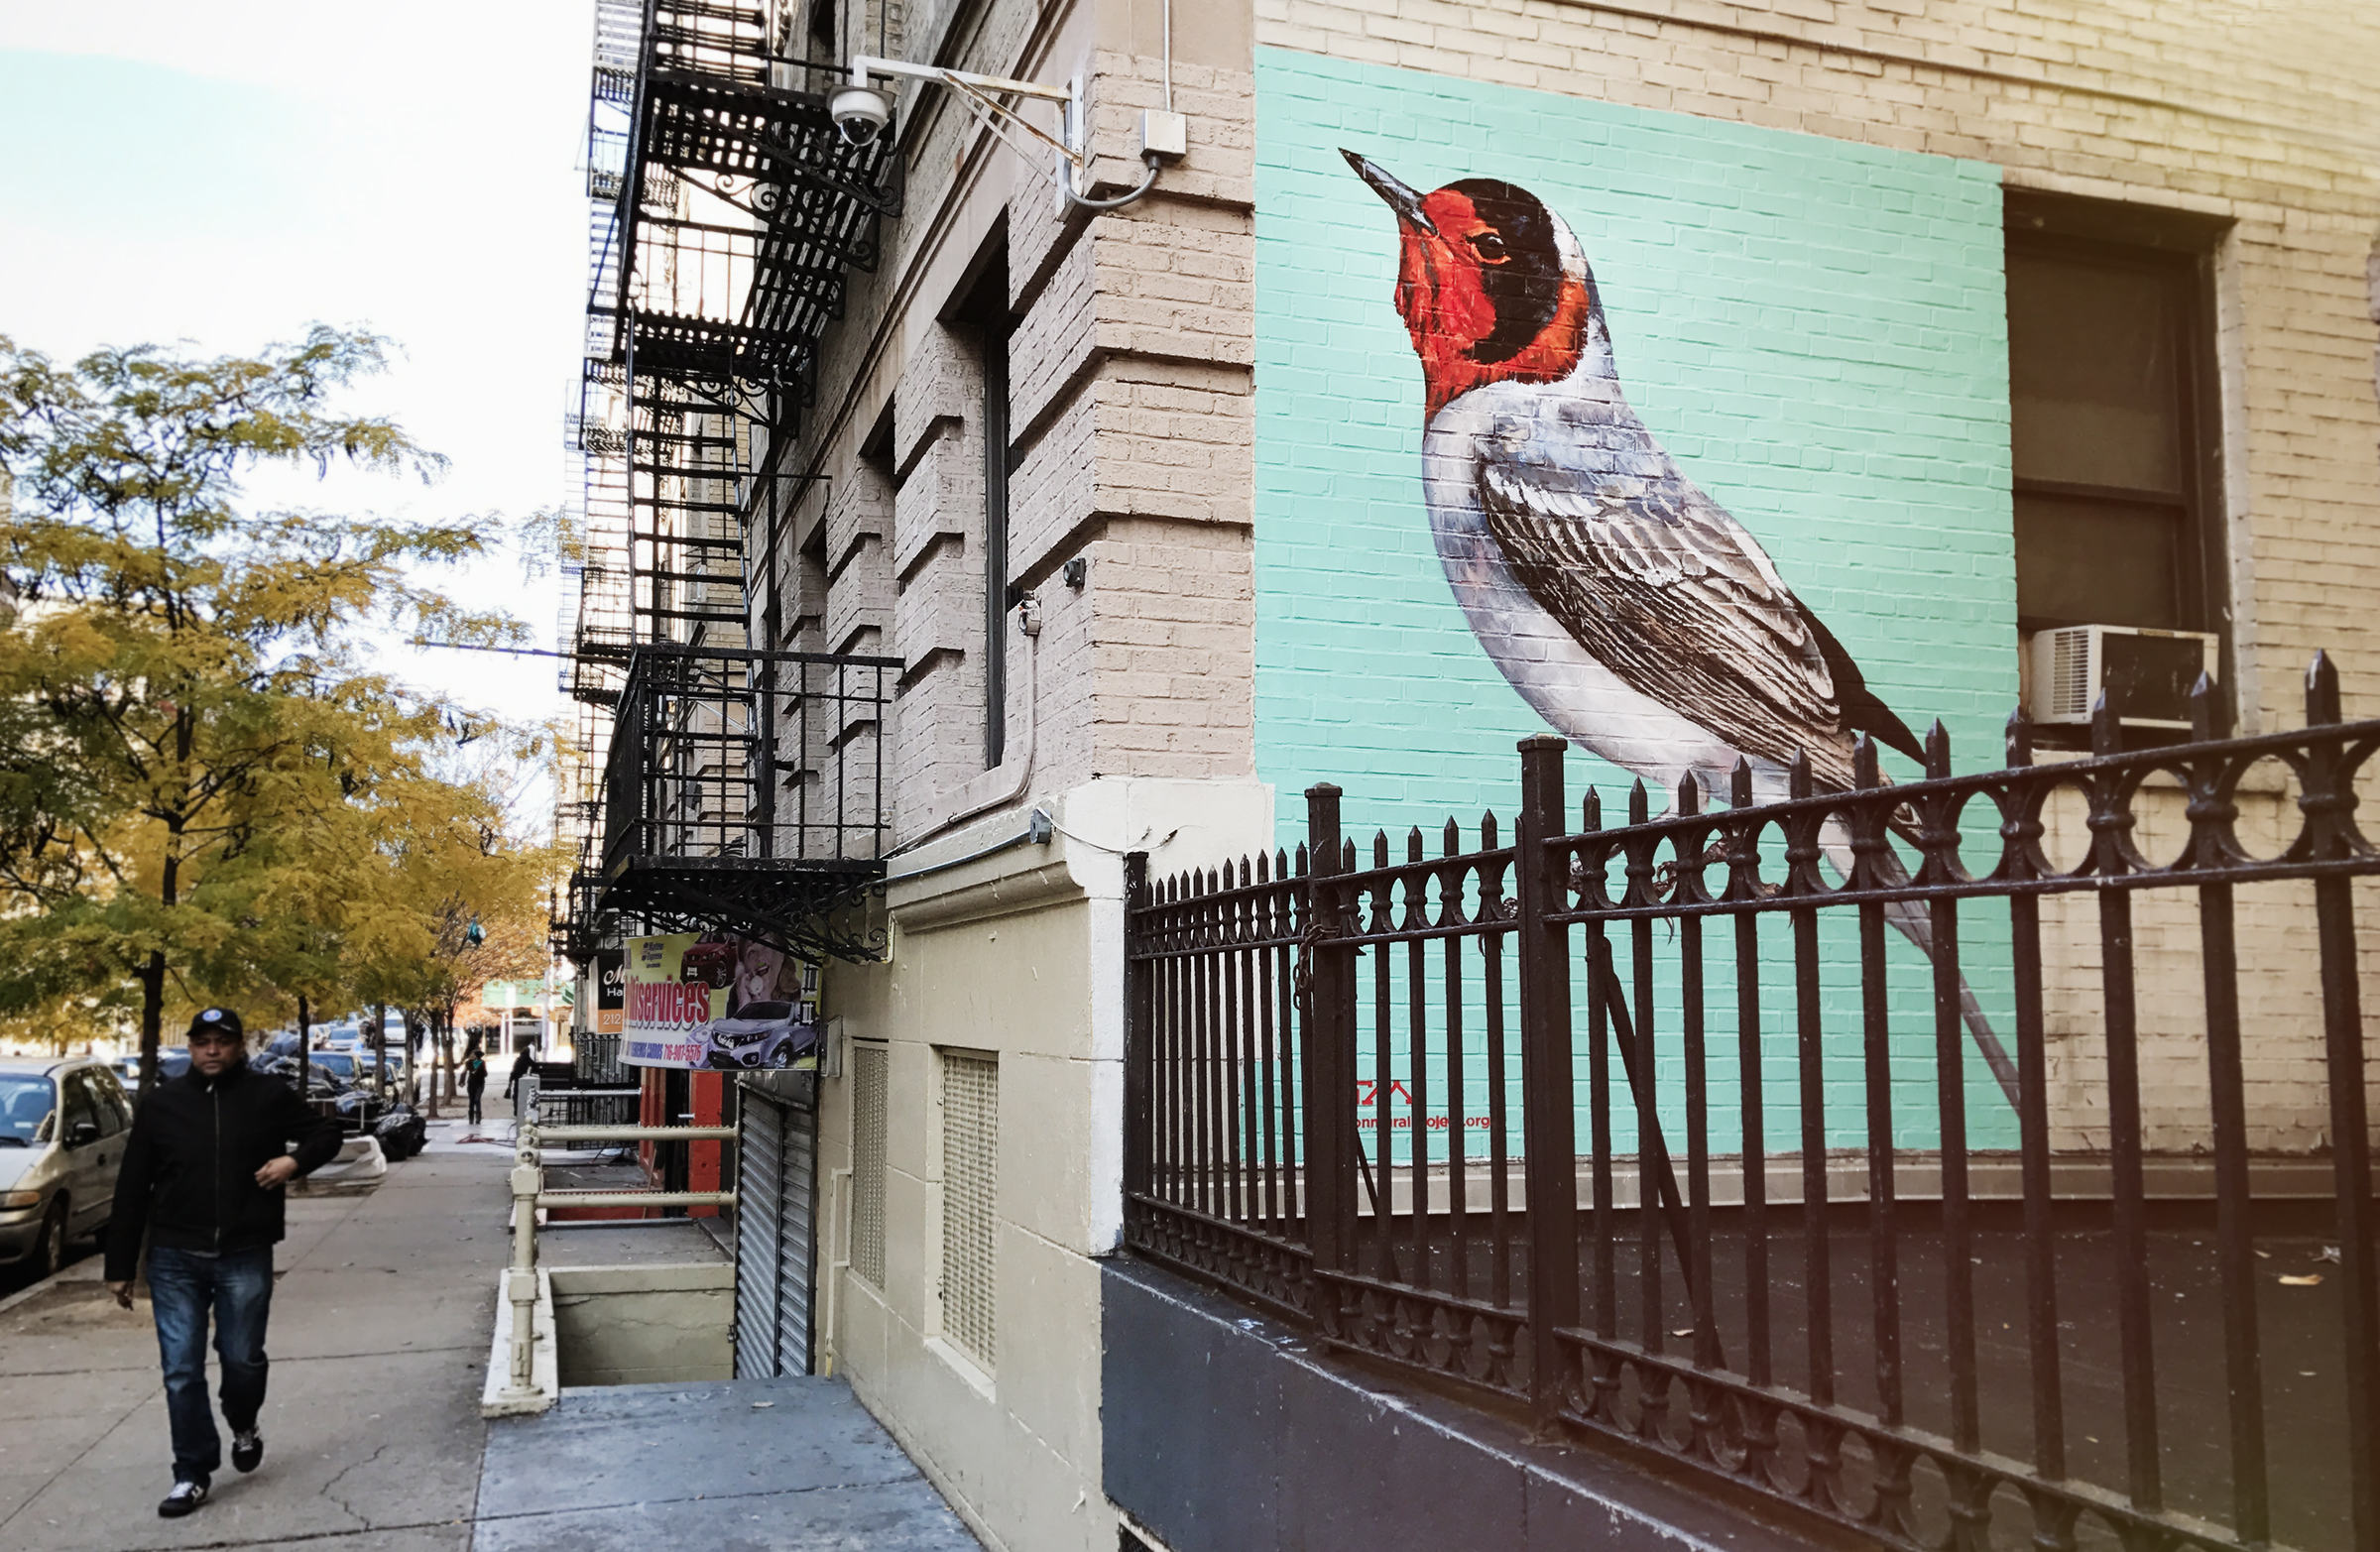 Red-faced Warbler by ATM, located on 601 West 162 St. in New York City. Mike Fernandez/Audubon